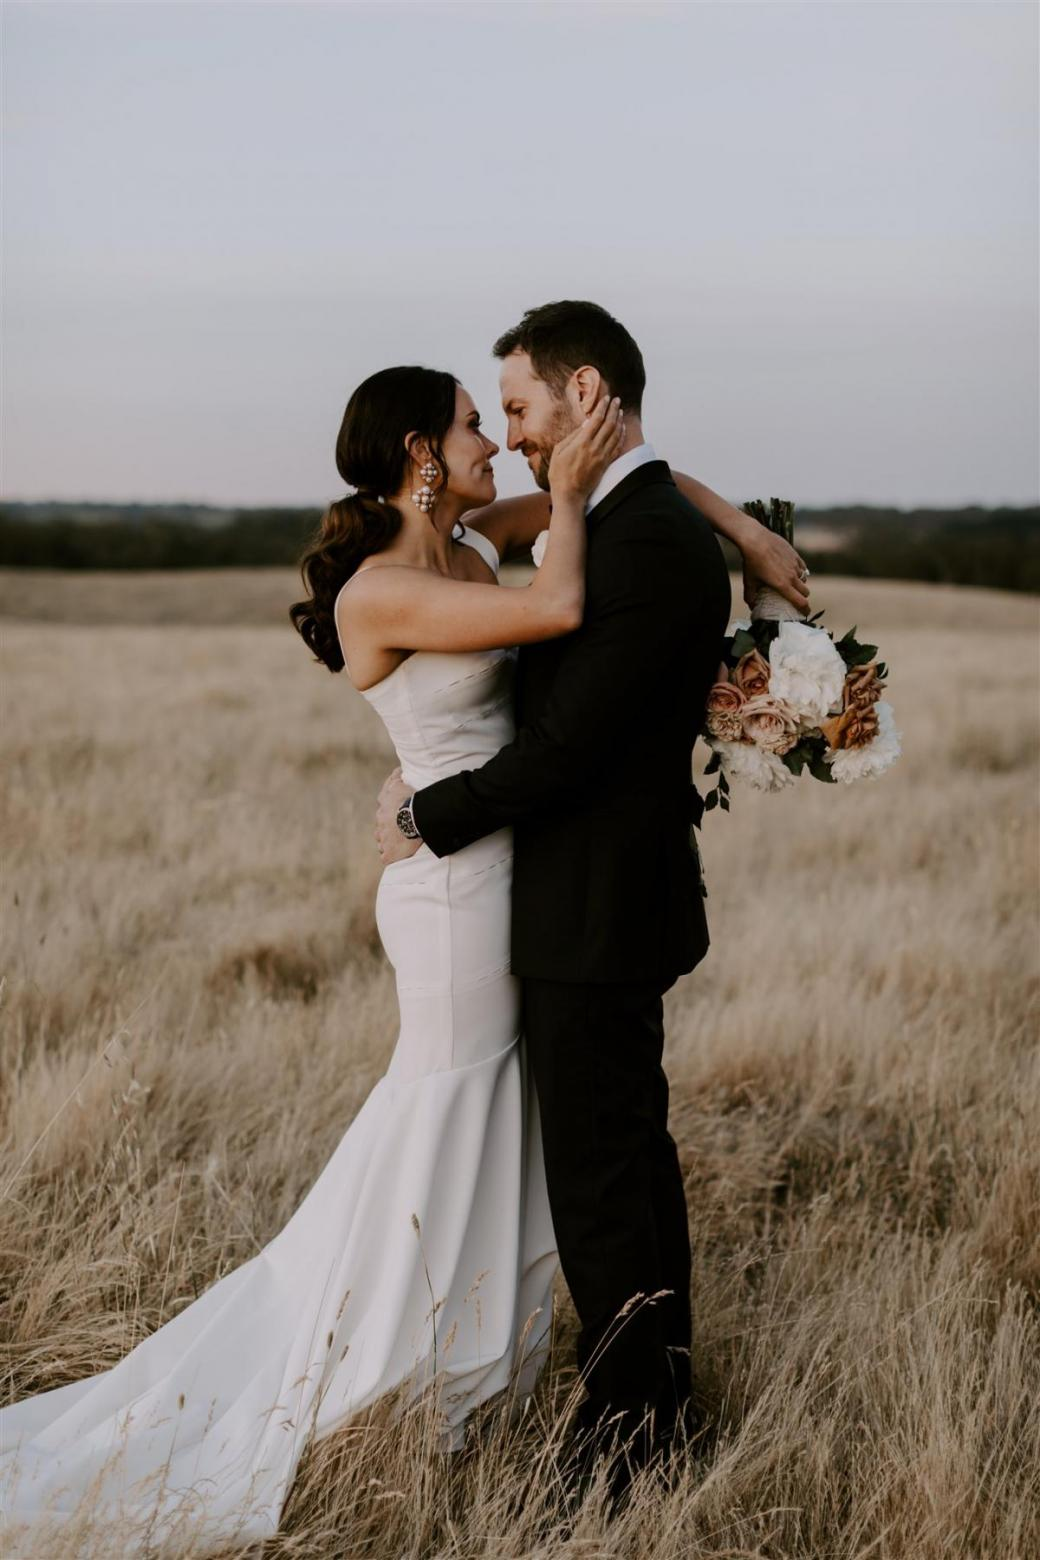 KWH bride Rachael and husband Adam sharing intimate moment. Rachael wears the minimal Violet gown.